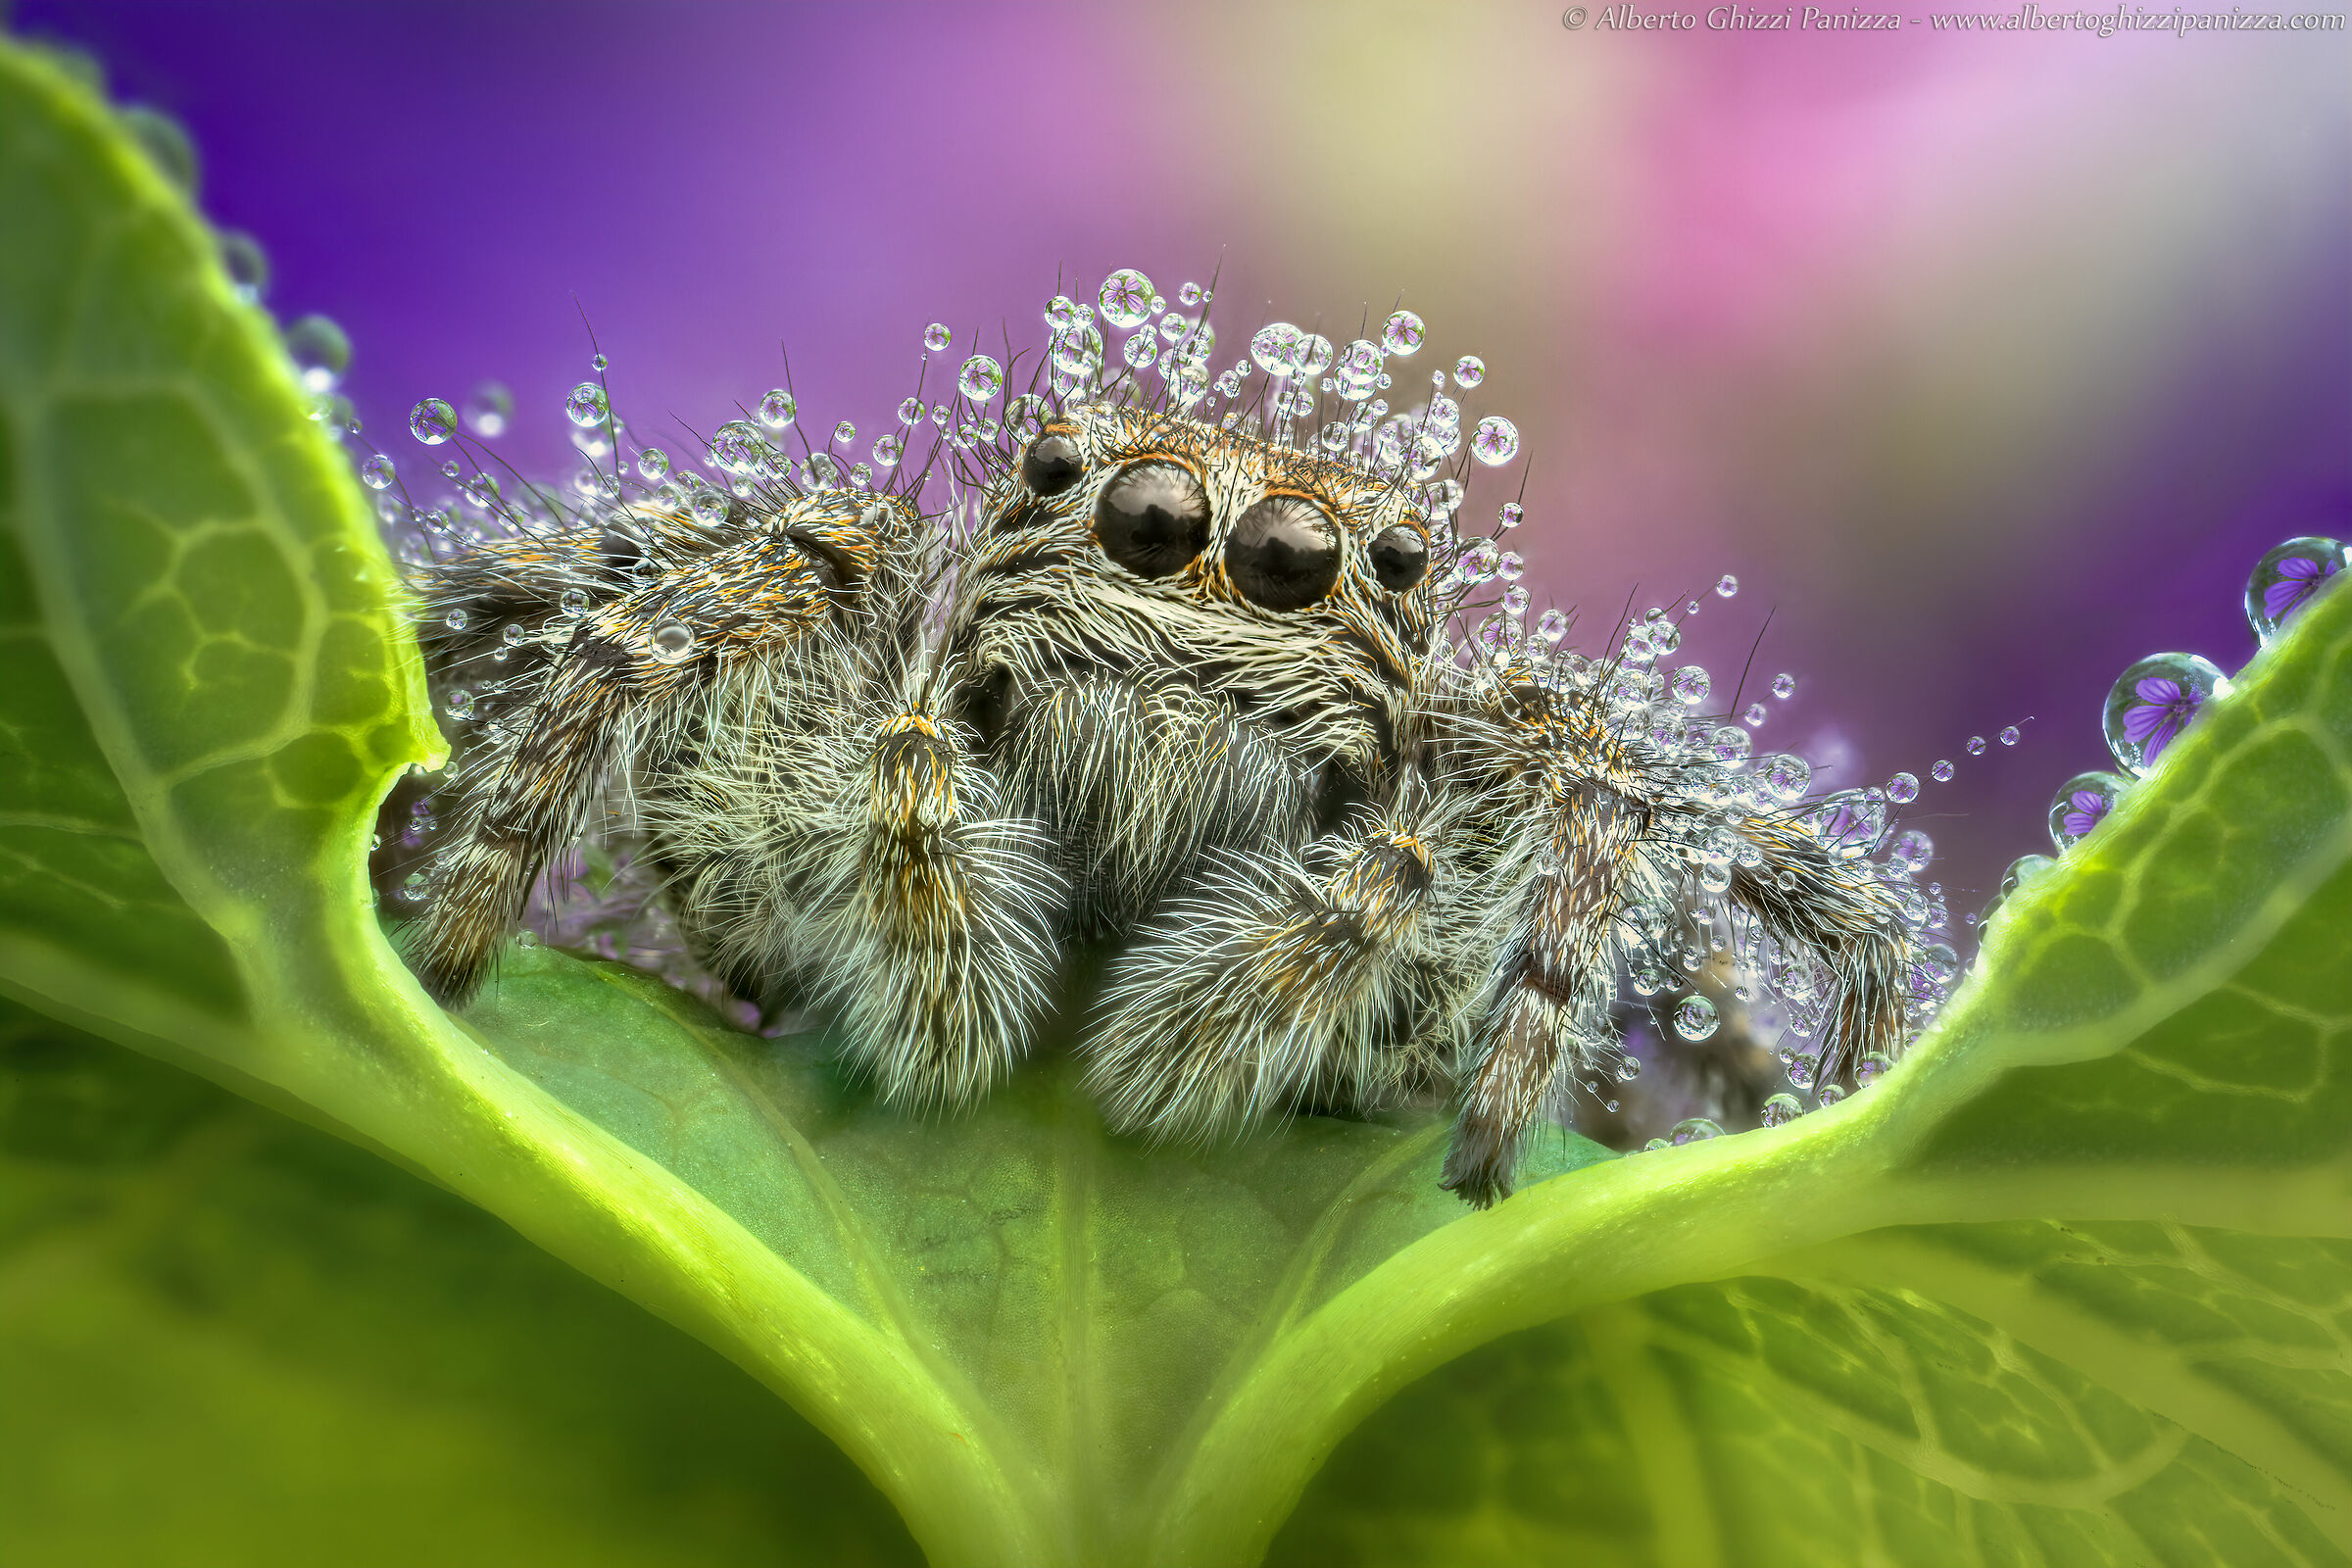 With rain even spiders have their own problems...